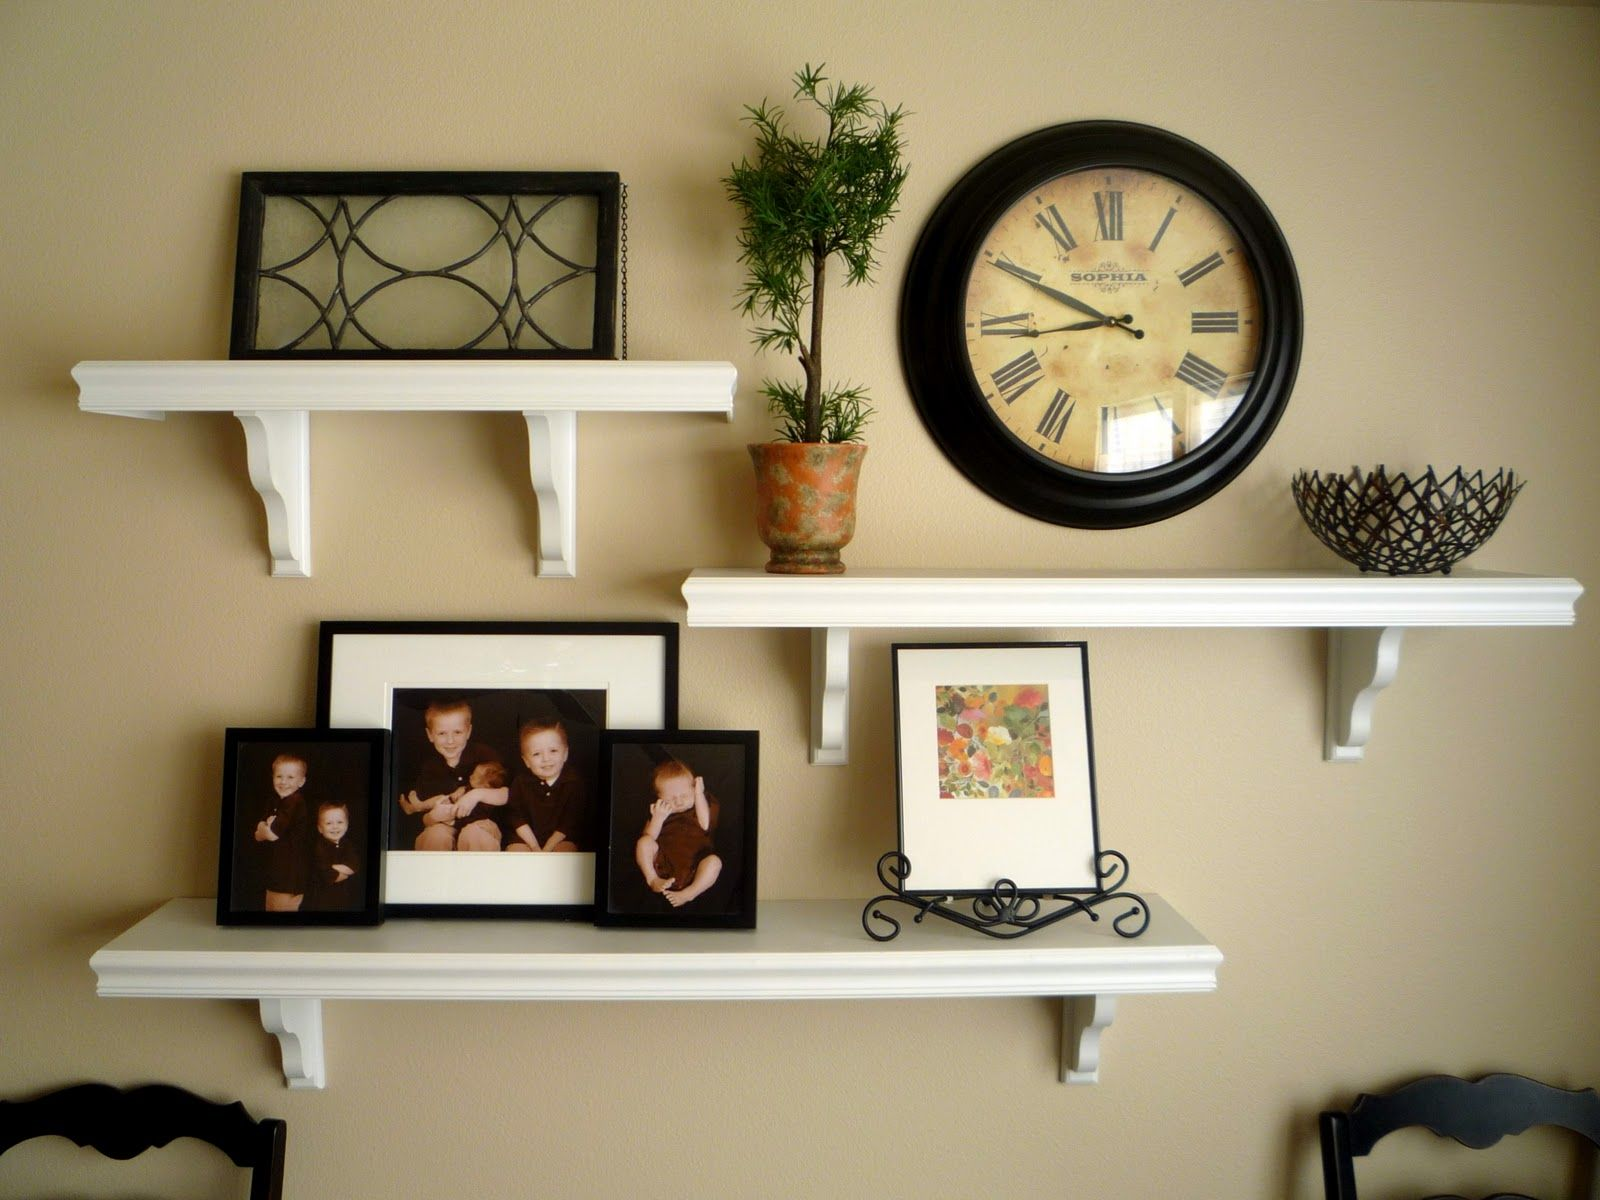 Stylish diy floating shelves wall shelves easy home - Shelves design for living room ...